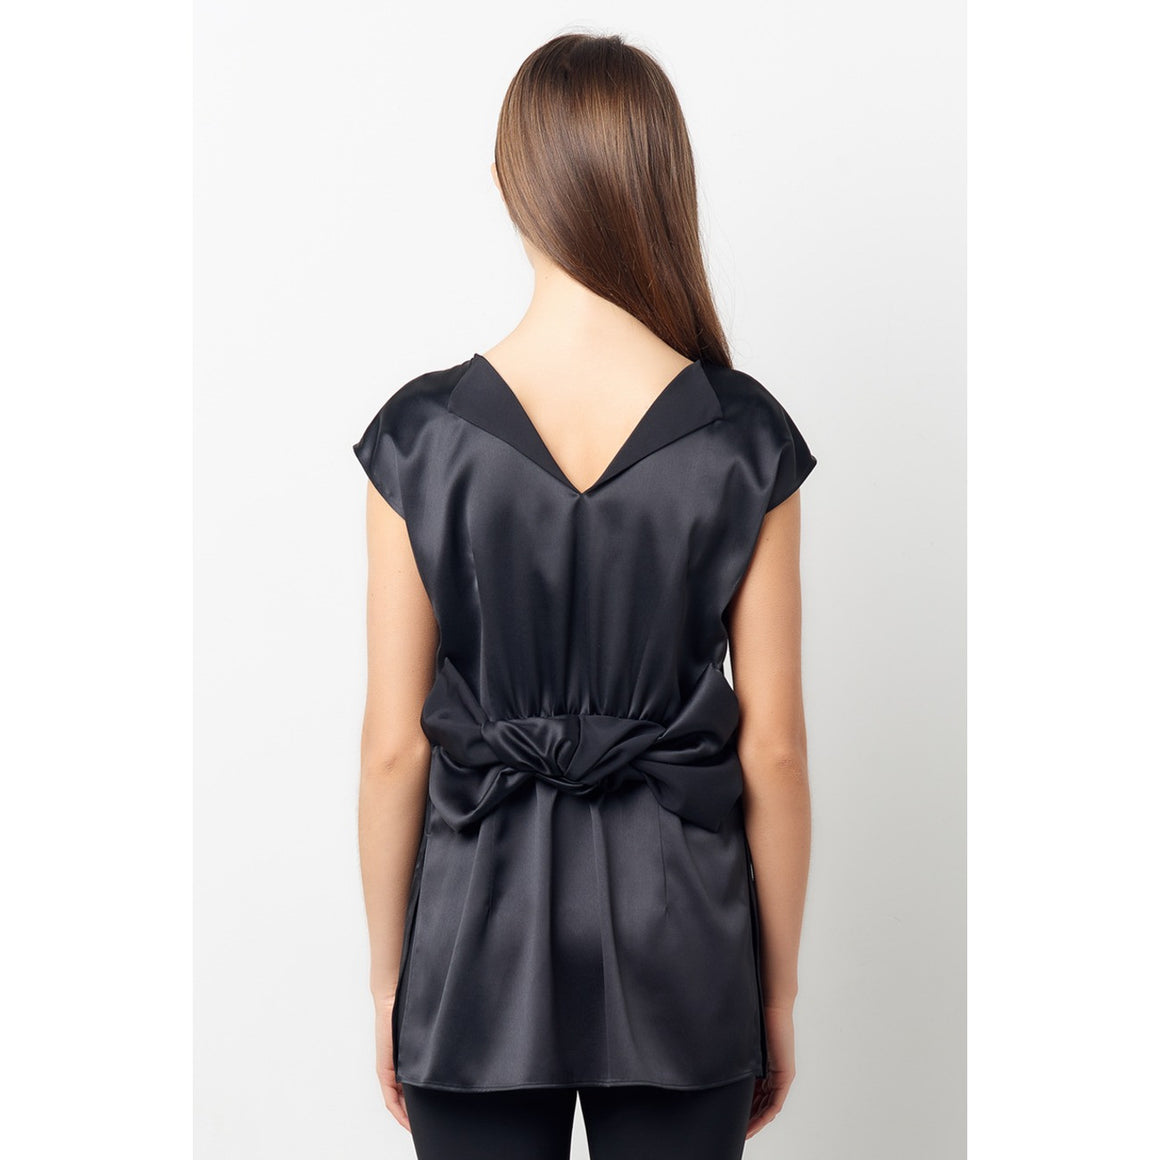 Lana Black Reversible Knot Top